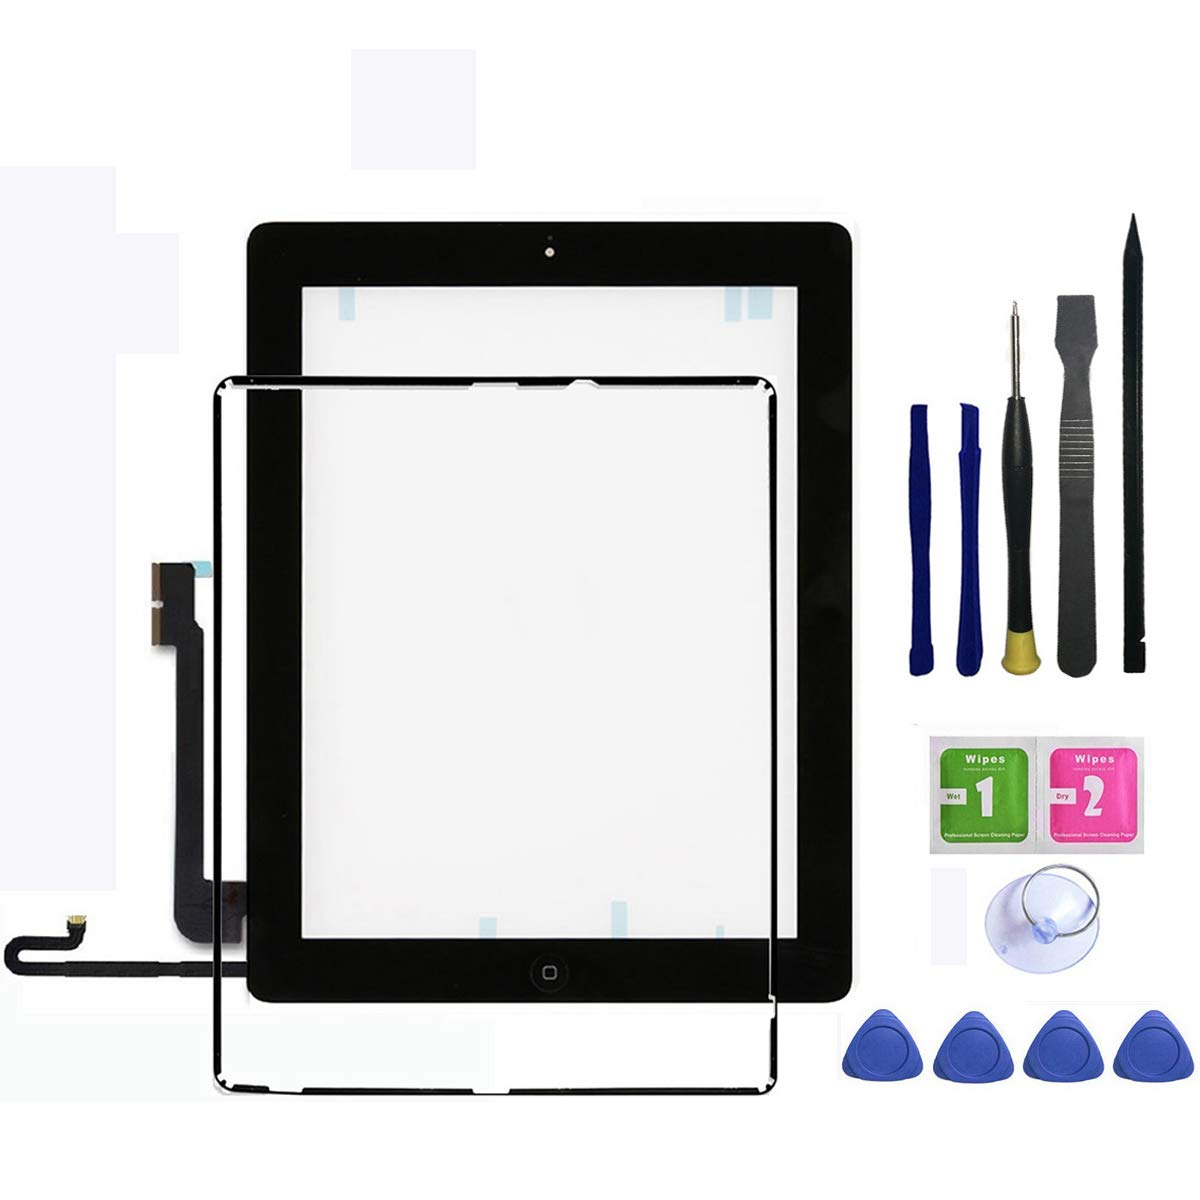 IPad 4 Touch Screen Glass Digitizer Replacement Assembly Includes Home buttom + Camera Holder + Frame Bezel + Preinstalled Adhesive + Premium Repair Toolkit by FeiyueTech.(black)